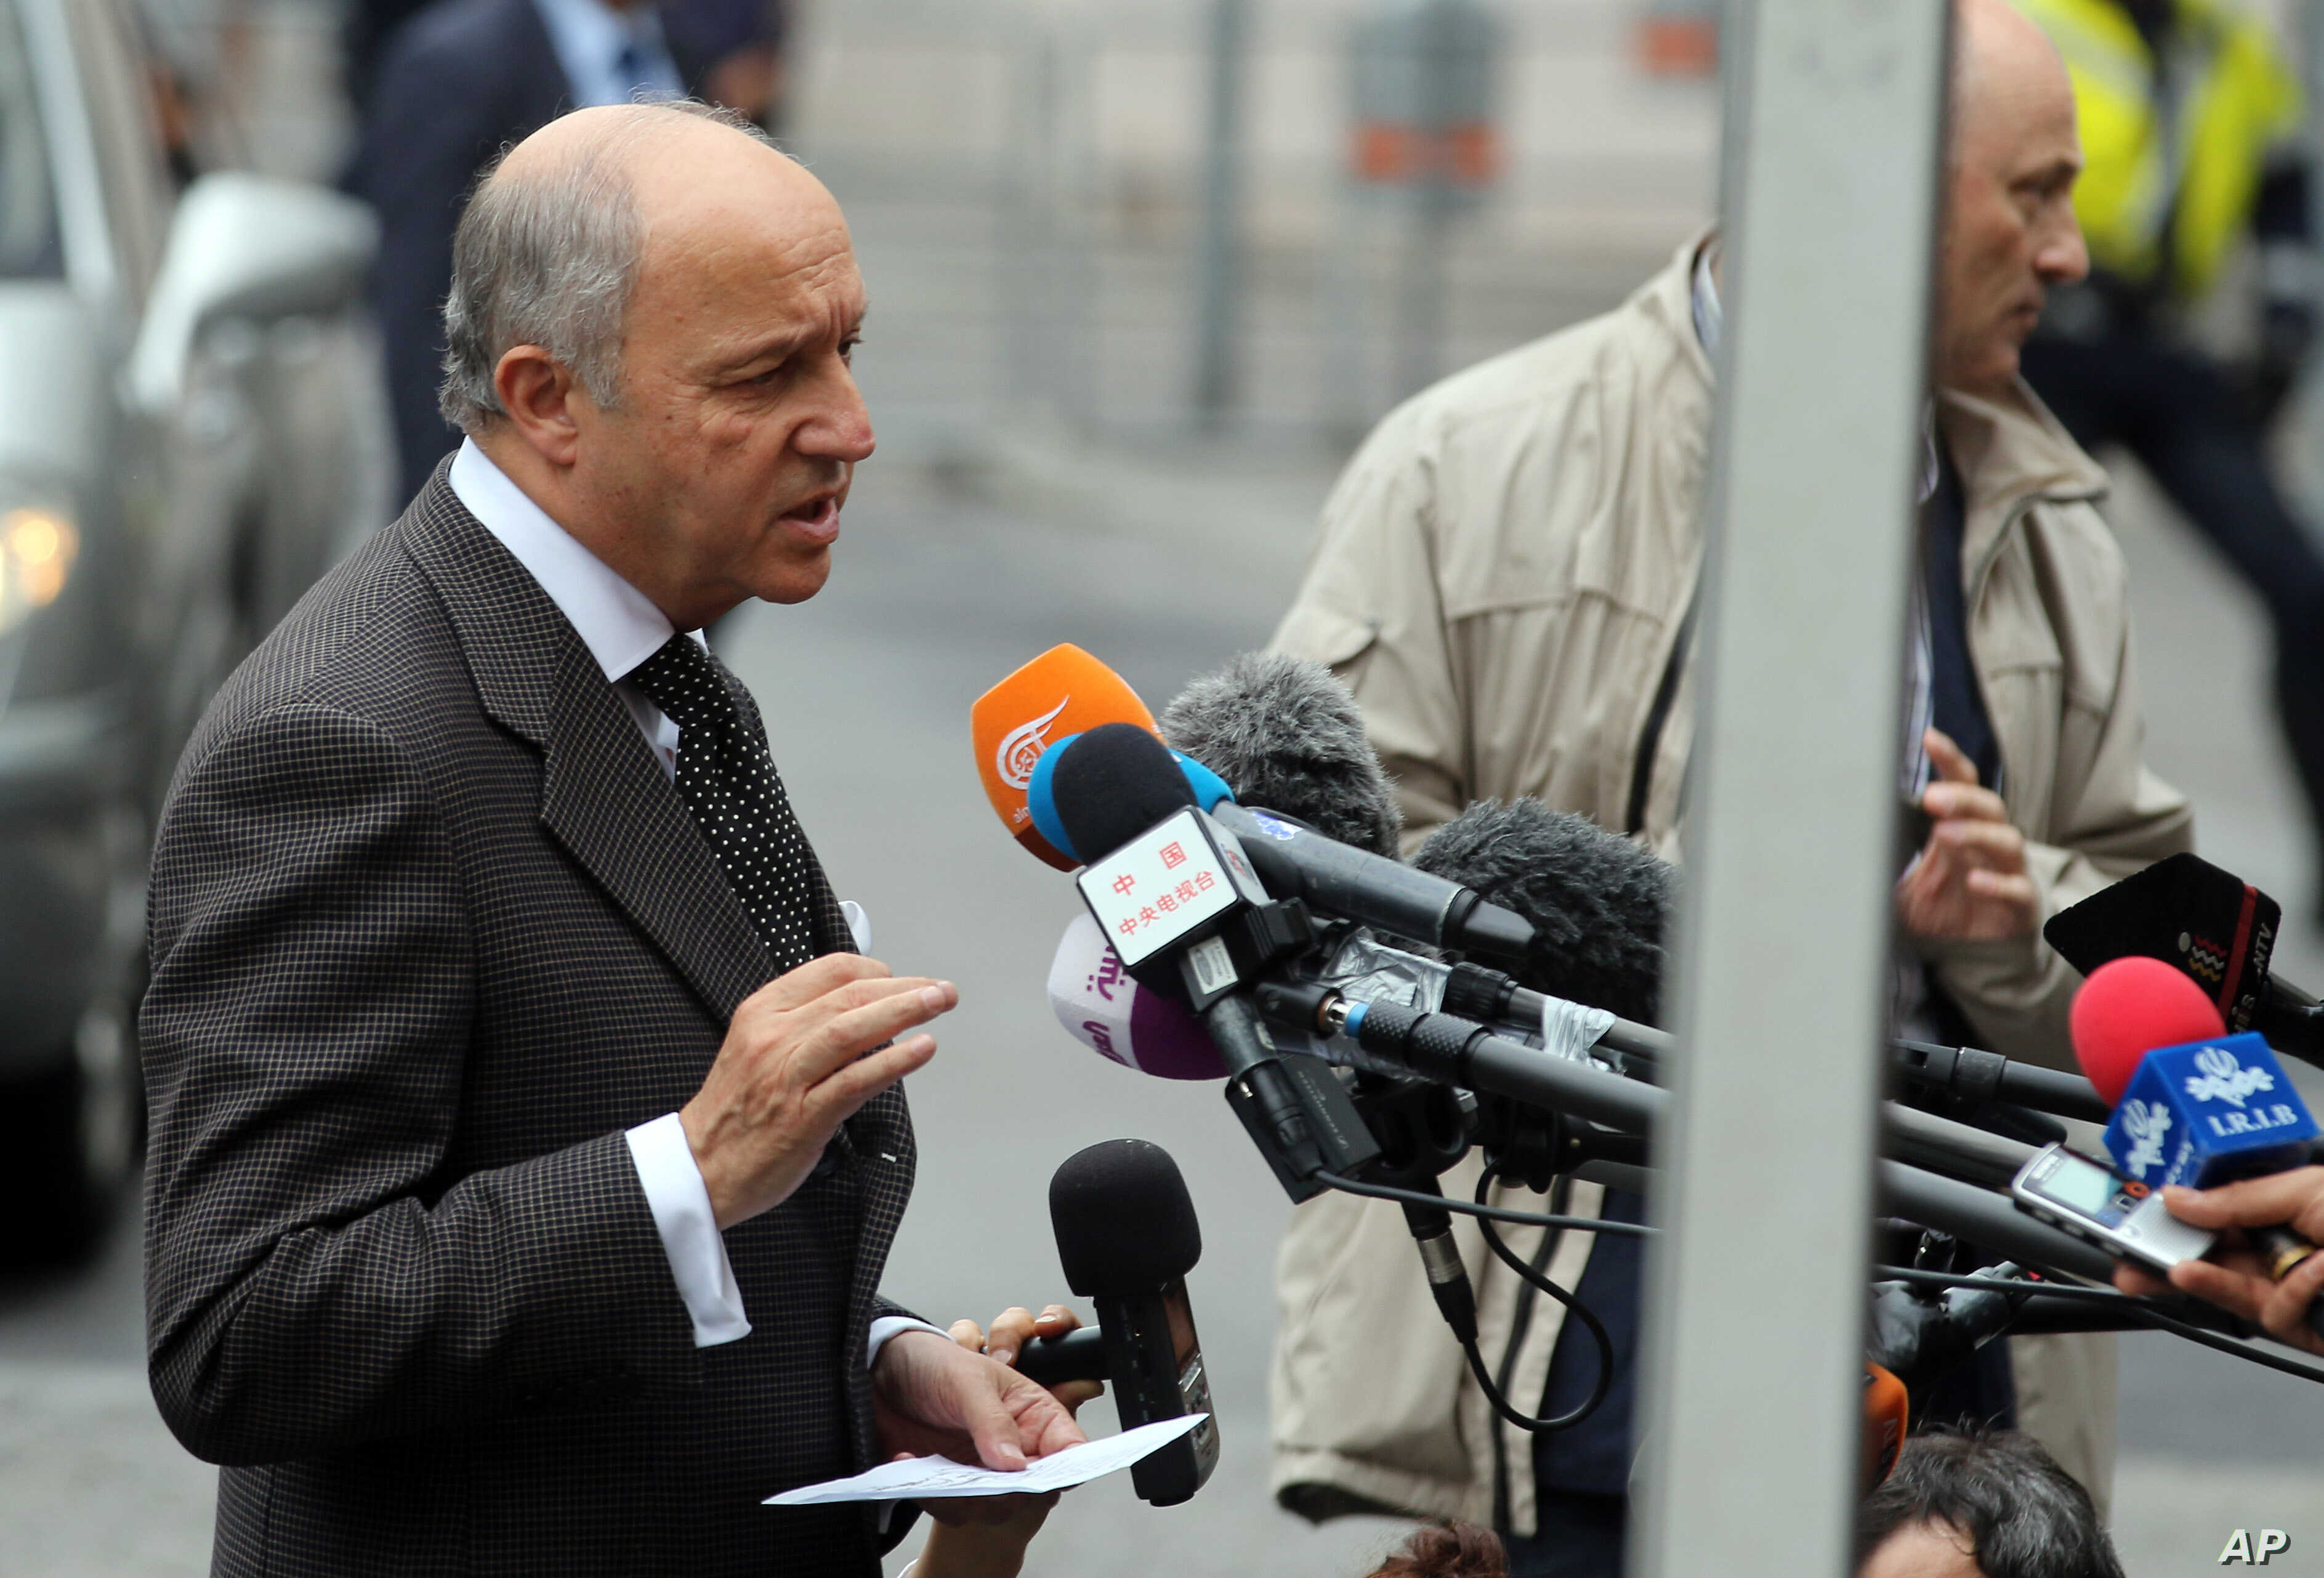 French Foreign Minister Laurent Fabius talks to media as he arrives at Palais Coburg where closed-door nuclear talks with Iran take place in Vienna, Austria, June 27, 2015.